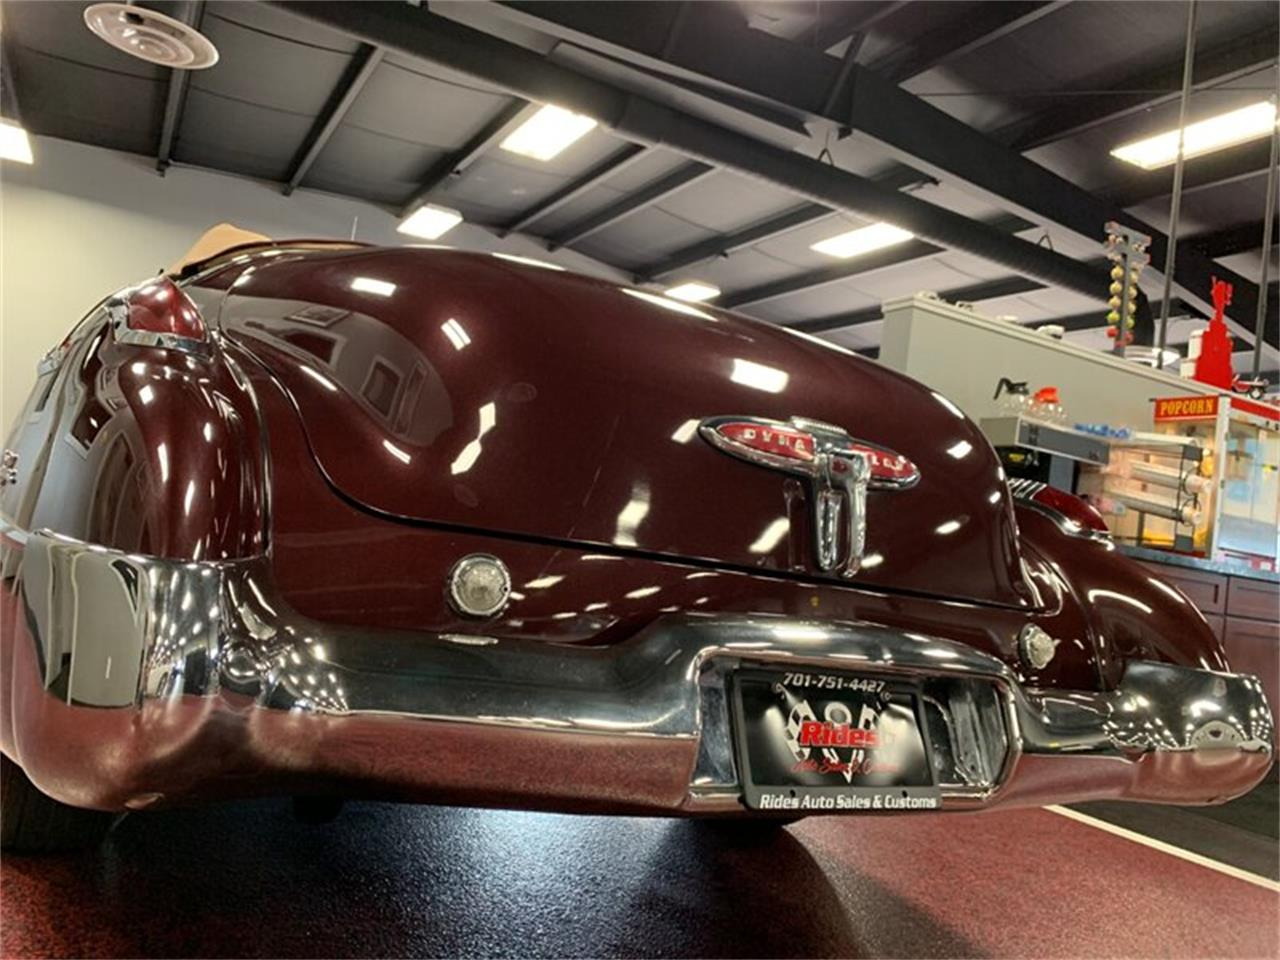 1949 Buick Roadmaster for sale in Bismarck, ND – photo 10